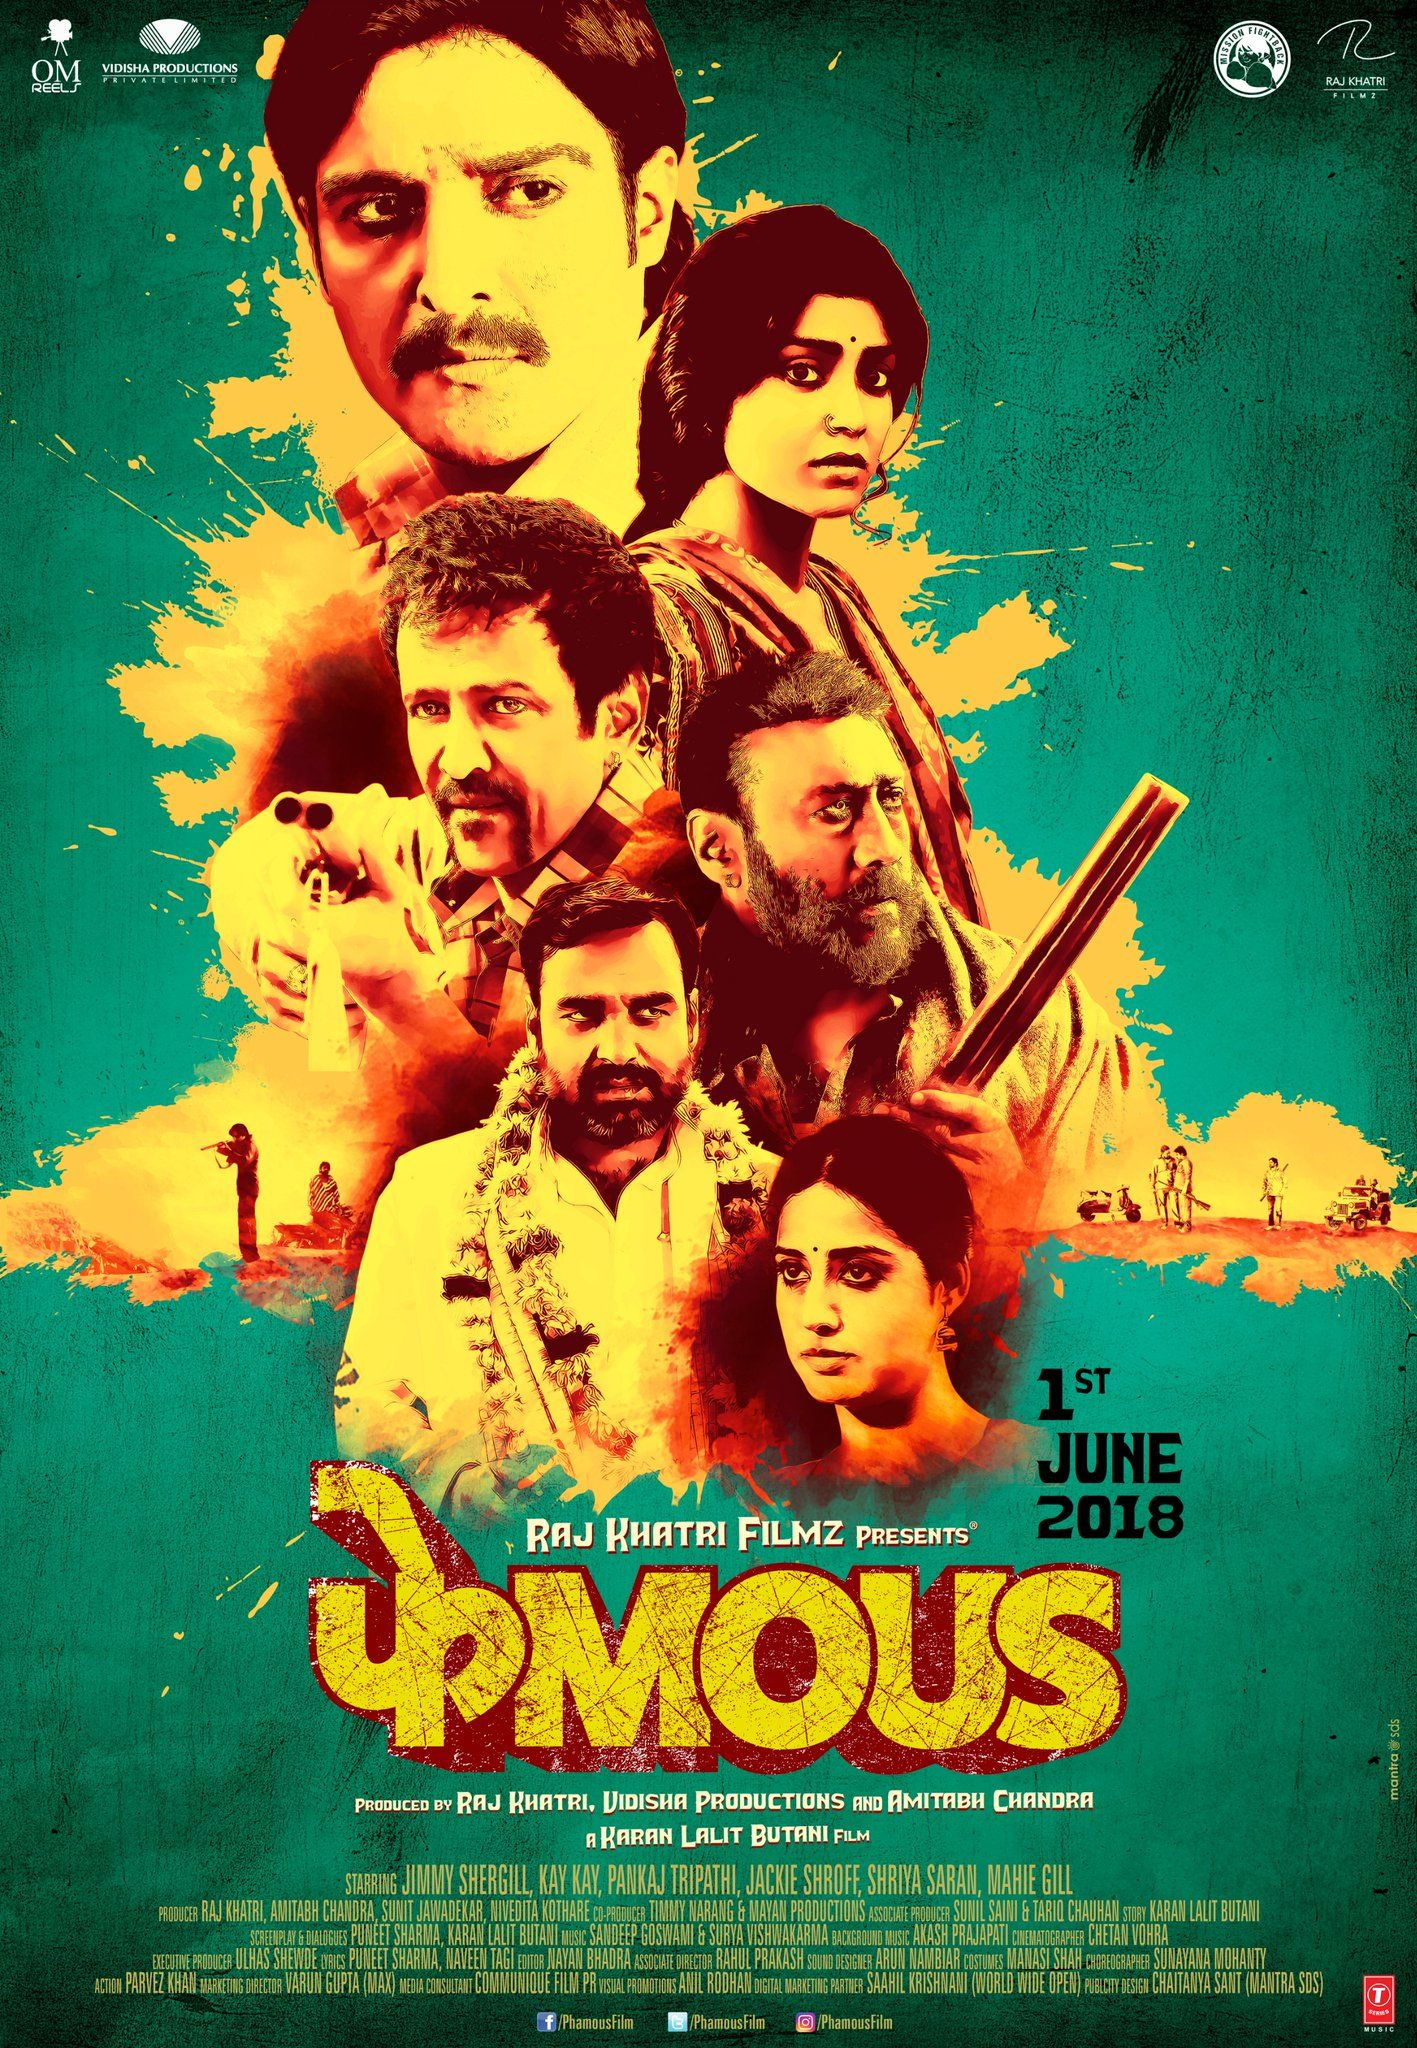 Phamous (2018) Hindi HDTVRip 700MB MKV